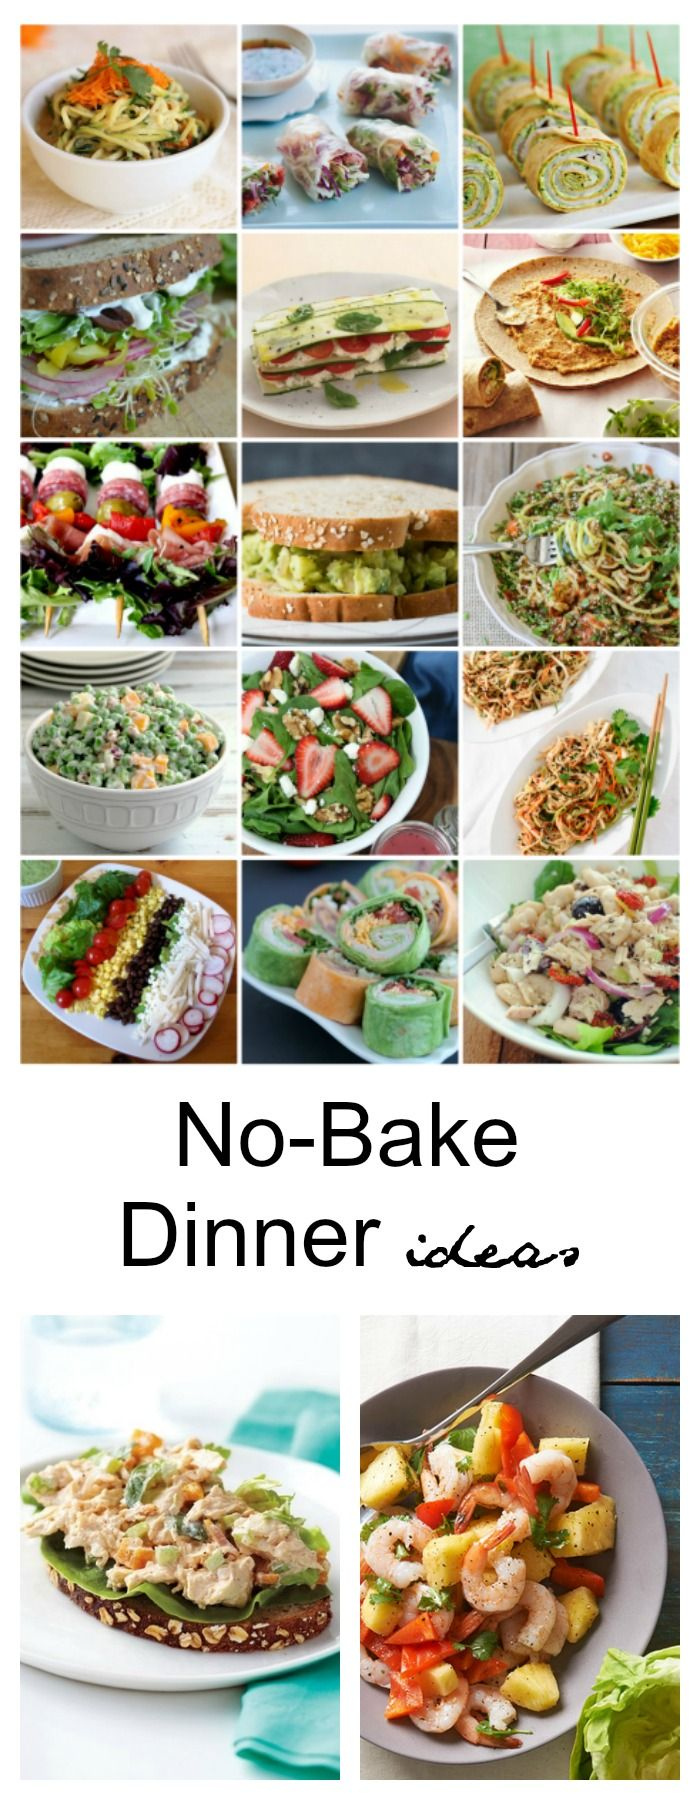 Recipe | No-Cook | Easy Dinner Ideas | I would much rather be outside enjoying my kids and the beautiful sunshine. So, today I have gathered some No-Cook Dinner Ideas that are healthy, tasty and heat-free.